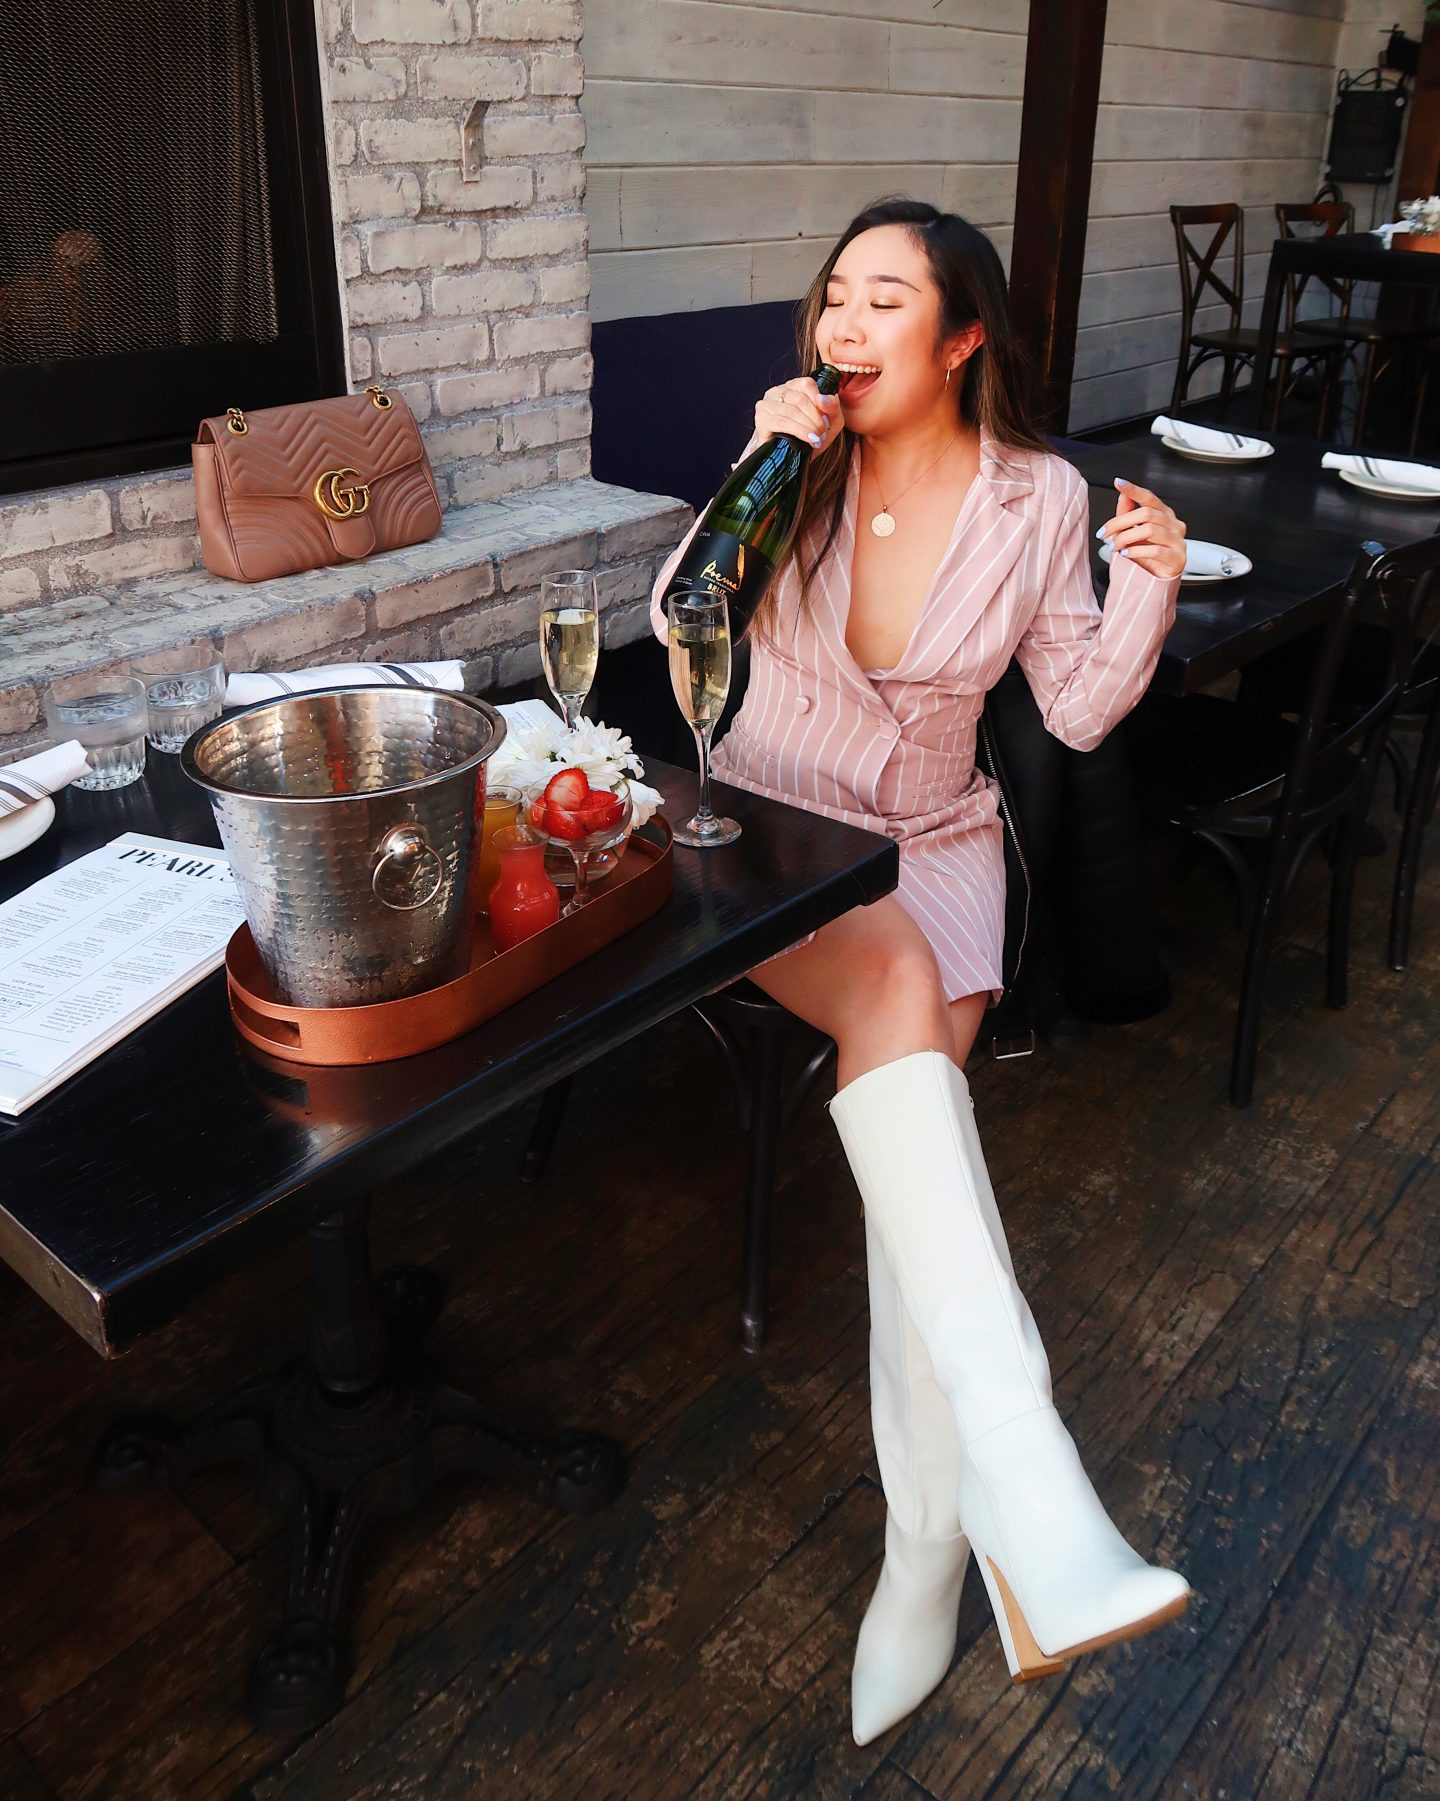 Doing Karaoke with a bottle of champagne with oysters in Los Angeles